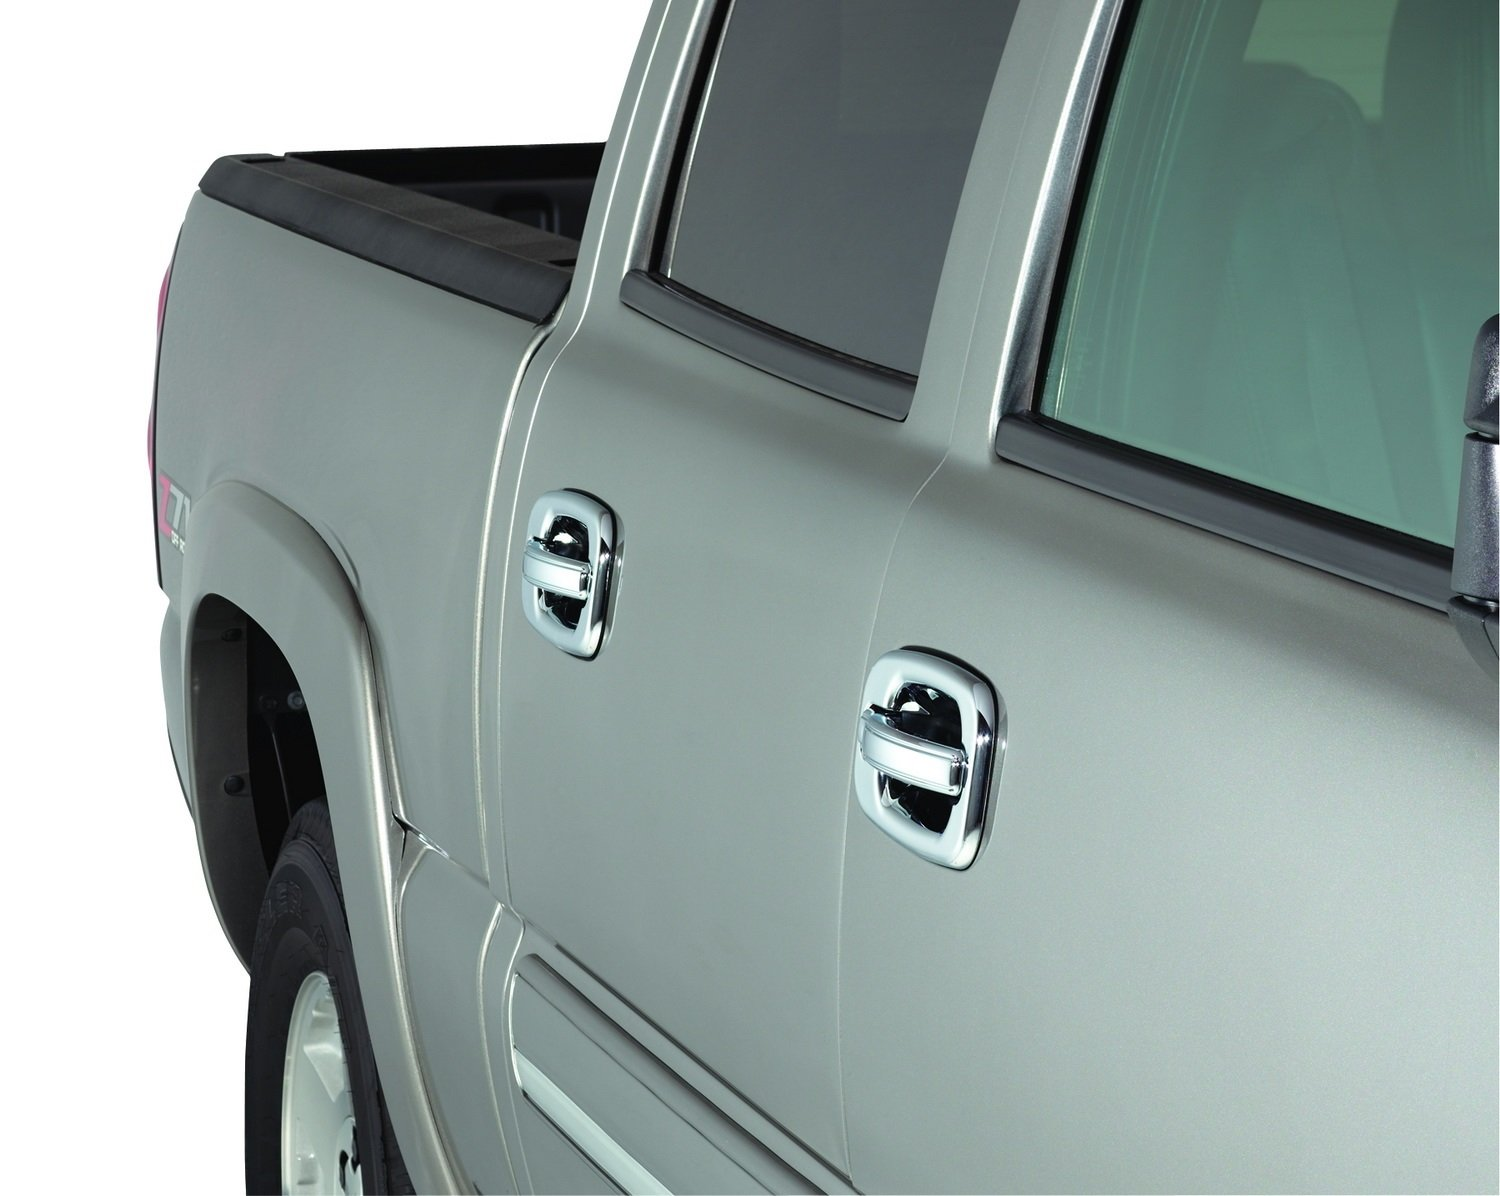 Auto Ventshade 685202 Chrome Door Handle Covers 4-Door Set for 2004-2014 Ford F-150 with Keypad